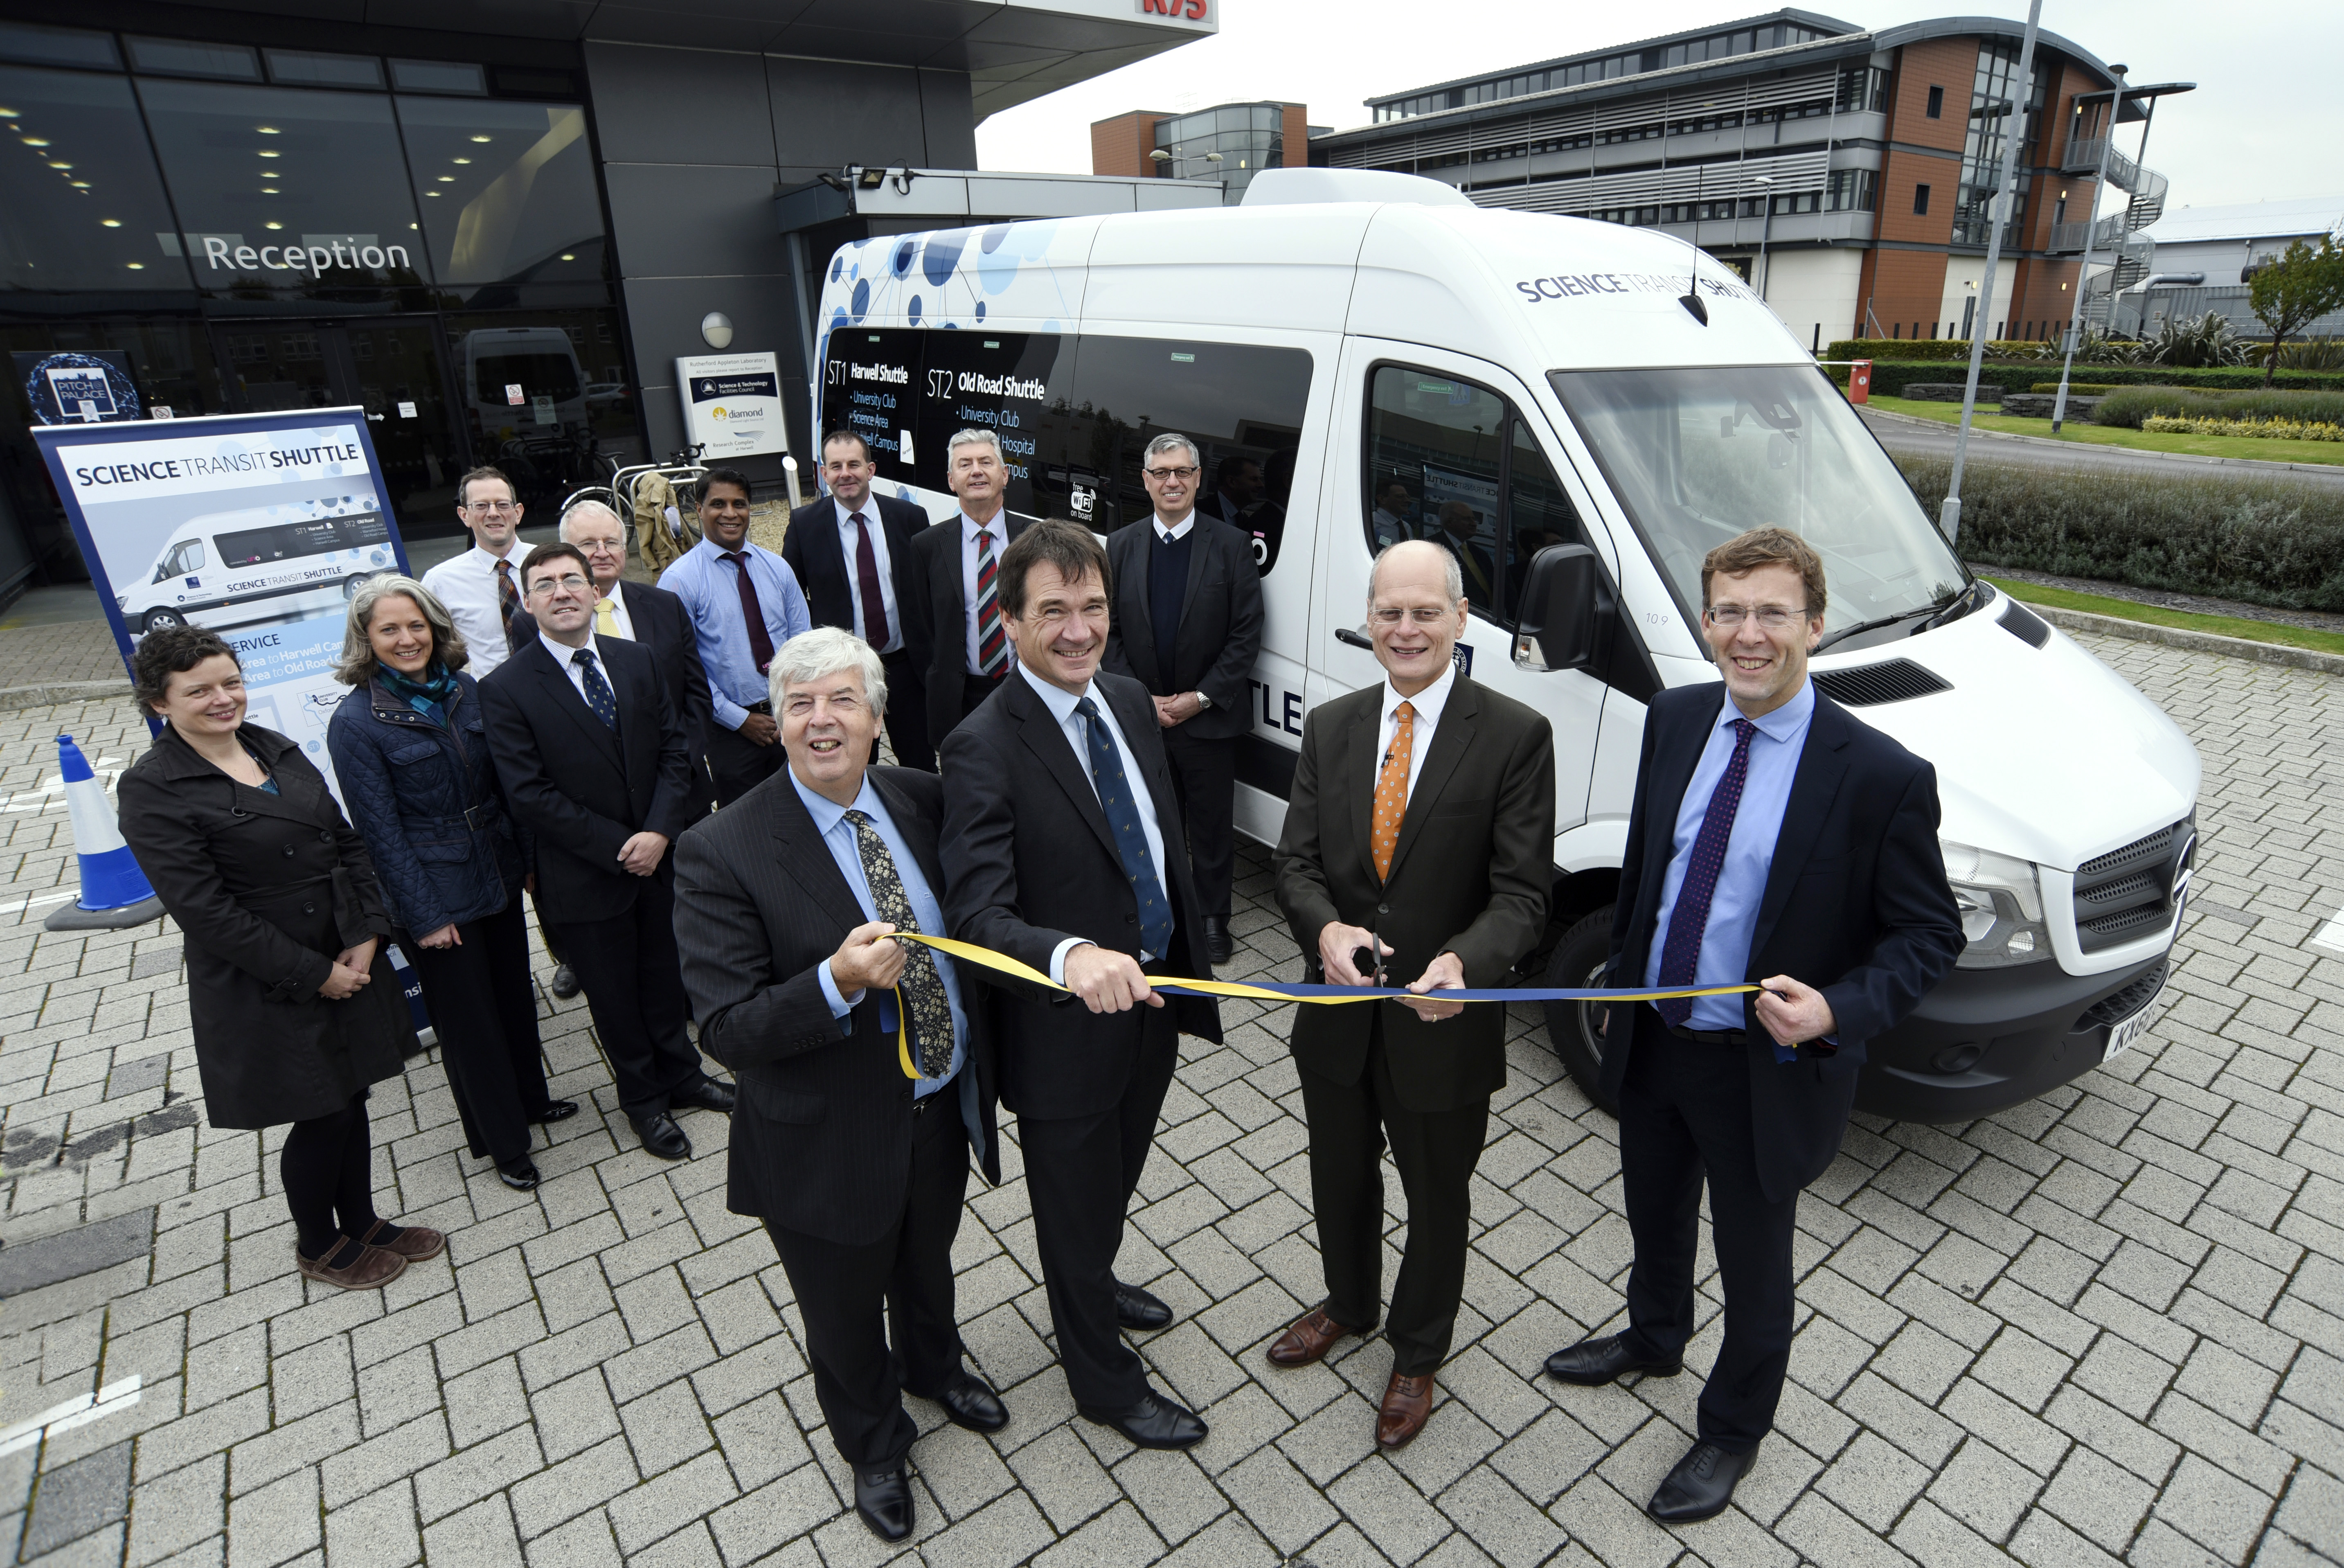 Science Transit Shuttle bus service officially launched